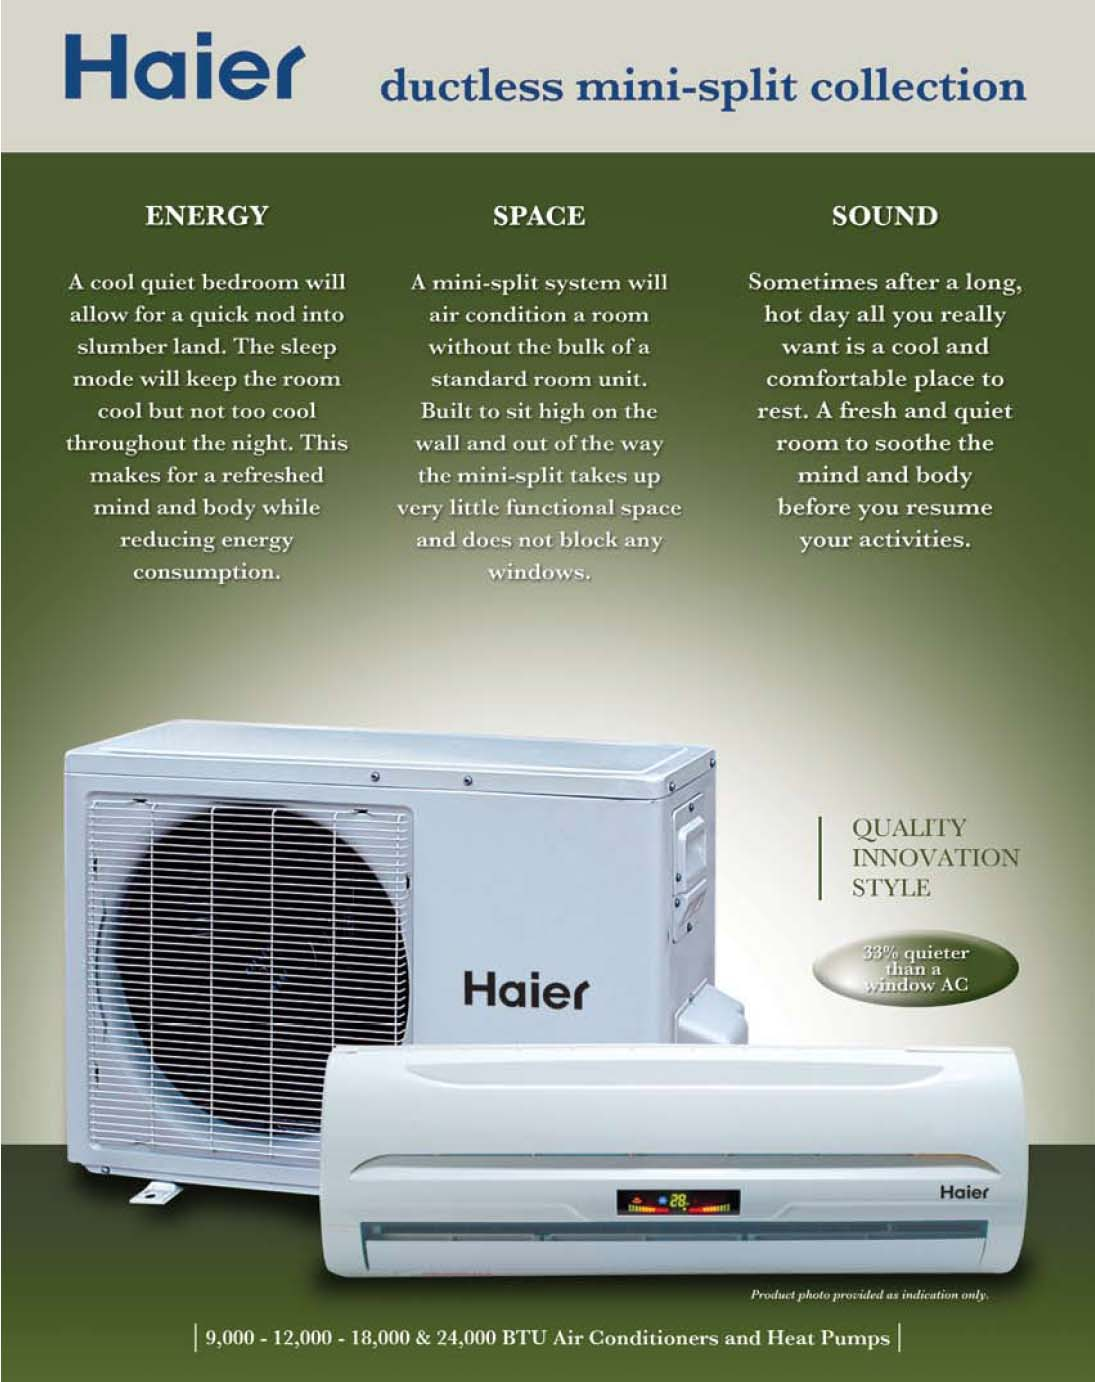 Appliances - Heating, Cooling & Air Quality - Air Conditioners - Through the Wall Air Conditioners at The Home Depot